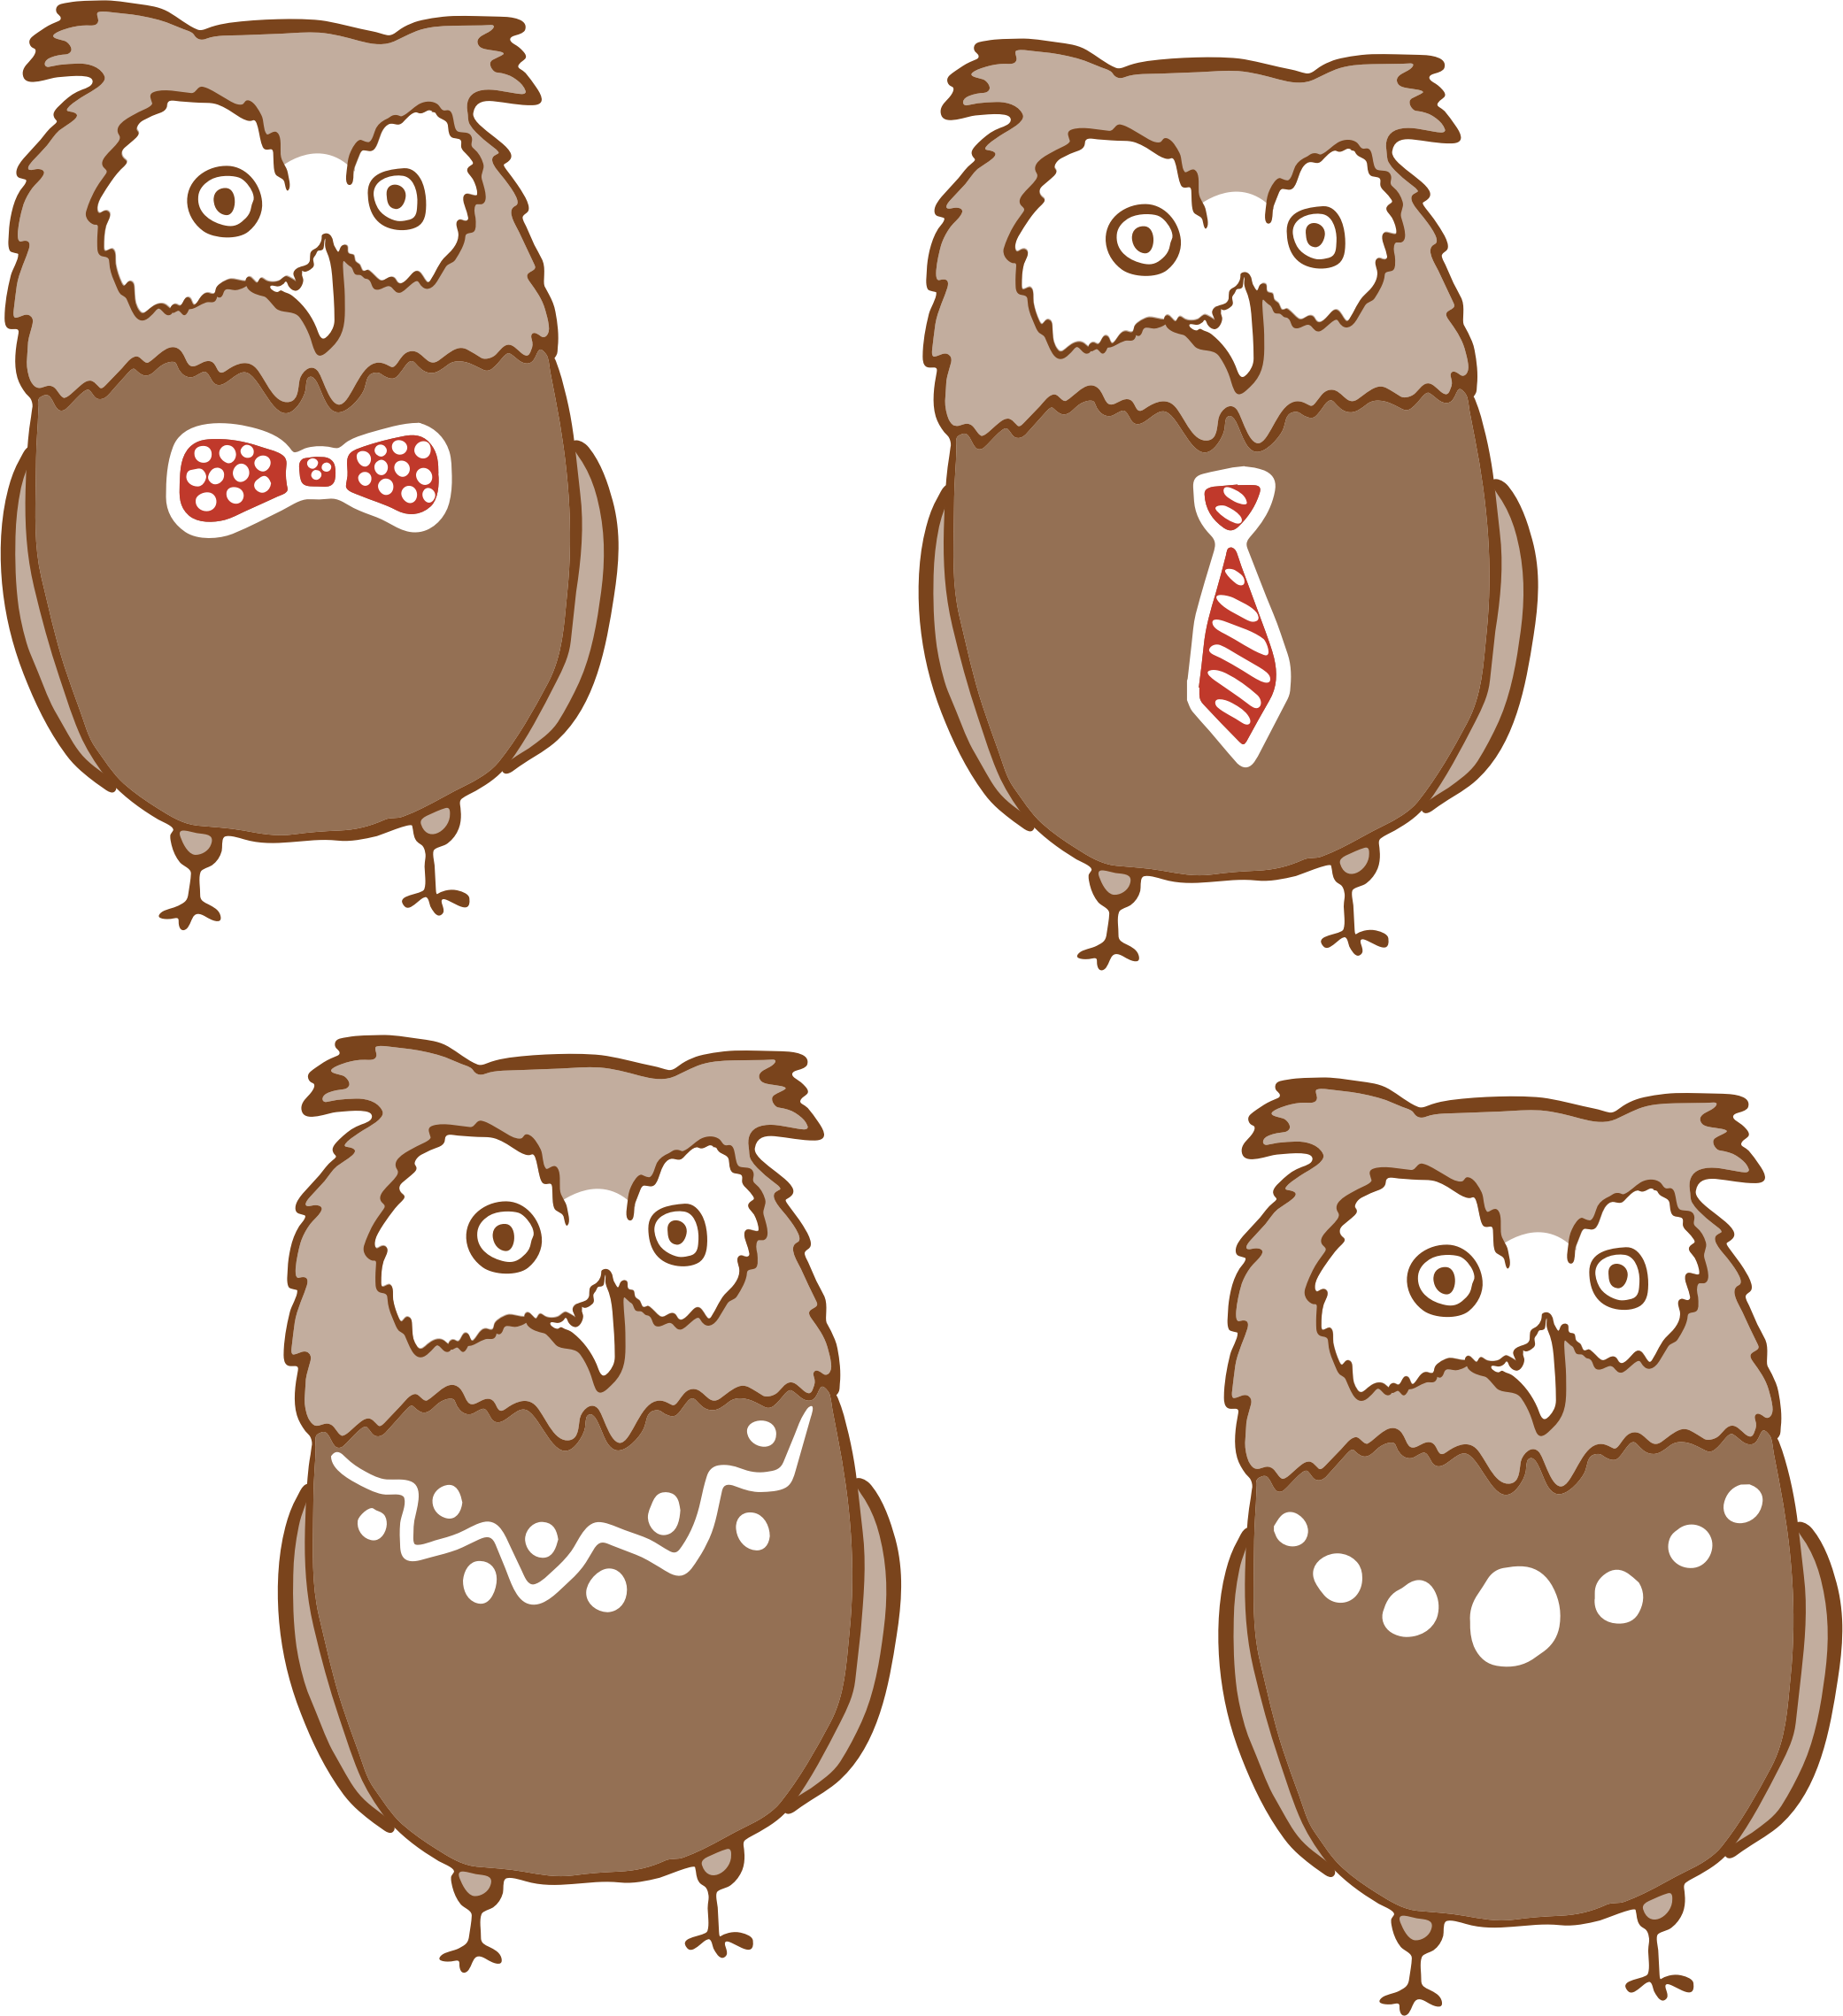 Anthropomorphic Owls by GDJ